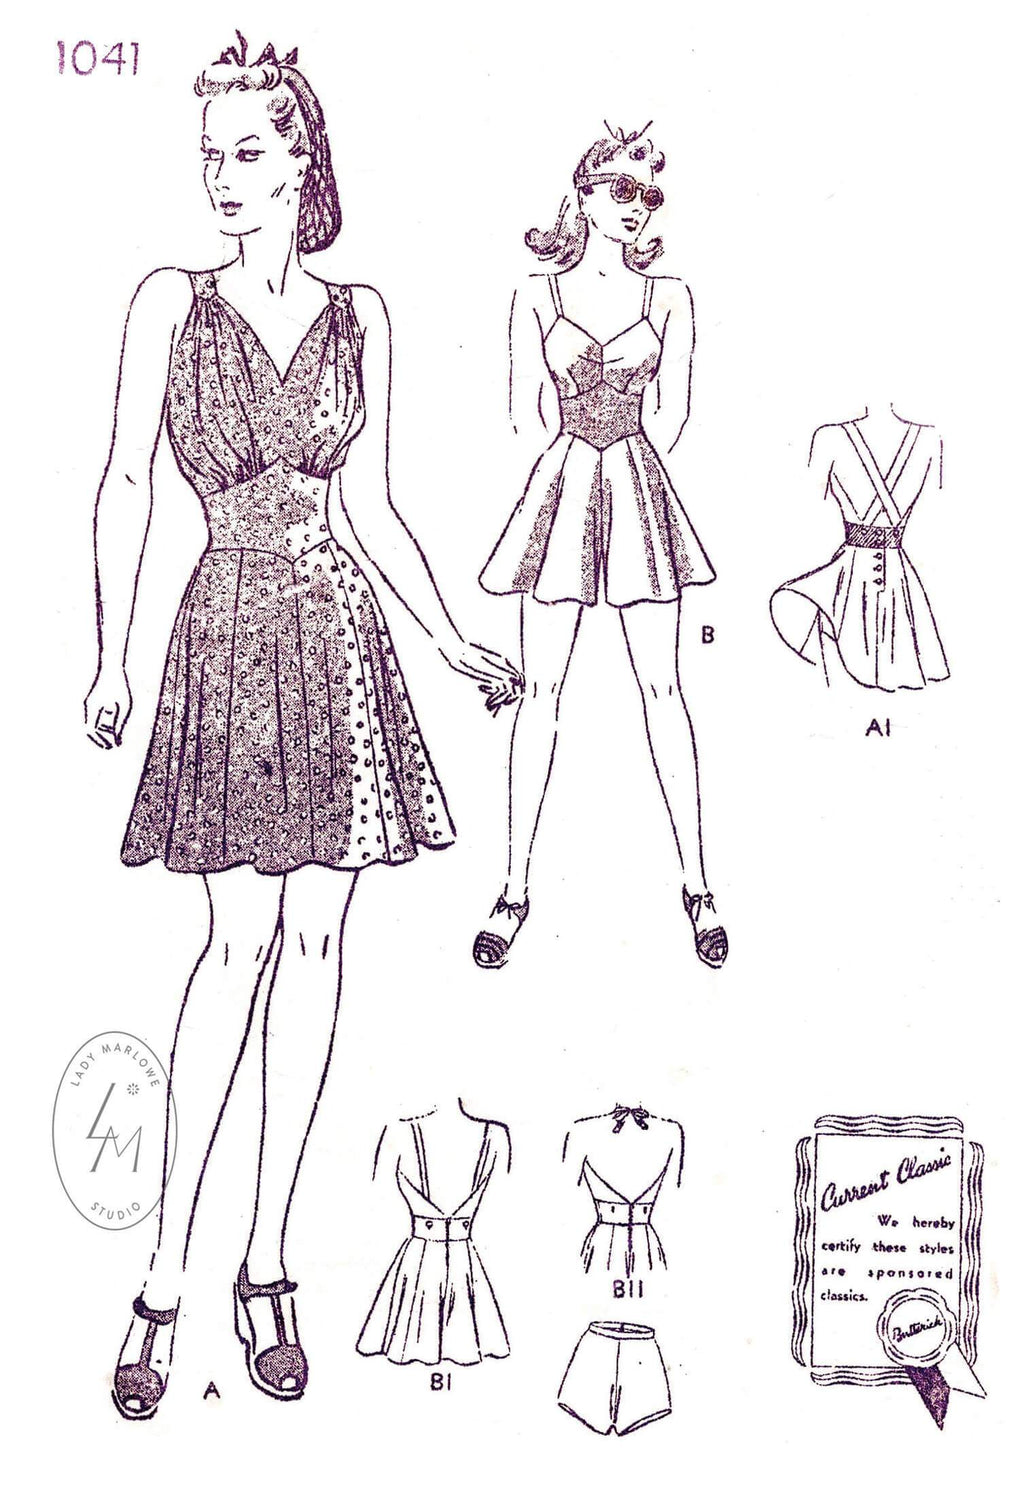 Butterick 1041 1940s beachwear playsuit flounce hem skater skirt or shorts vintage sewing pattern reproduction